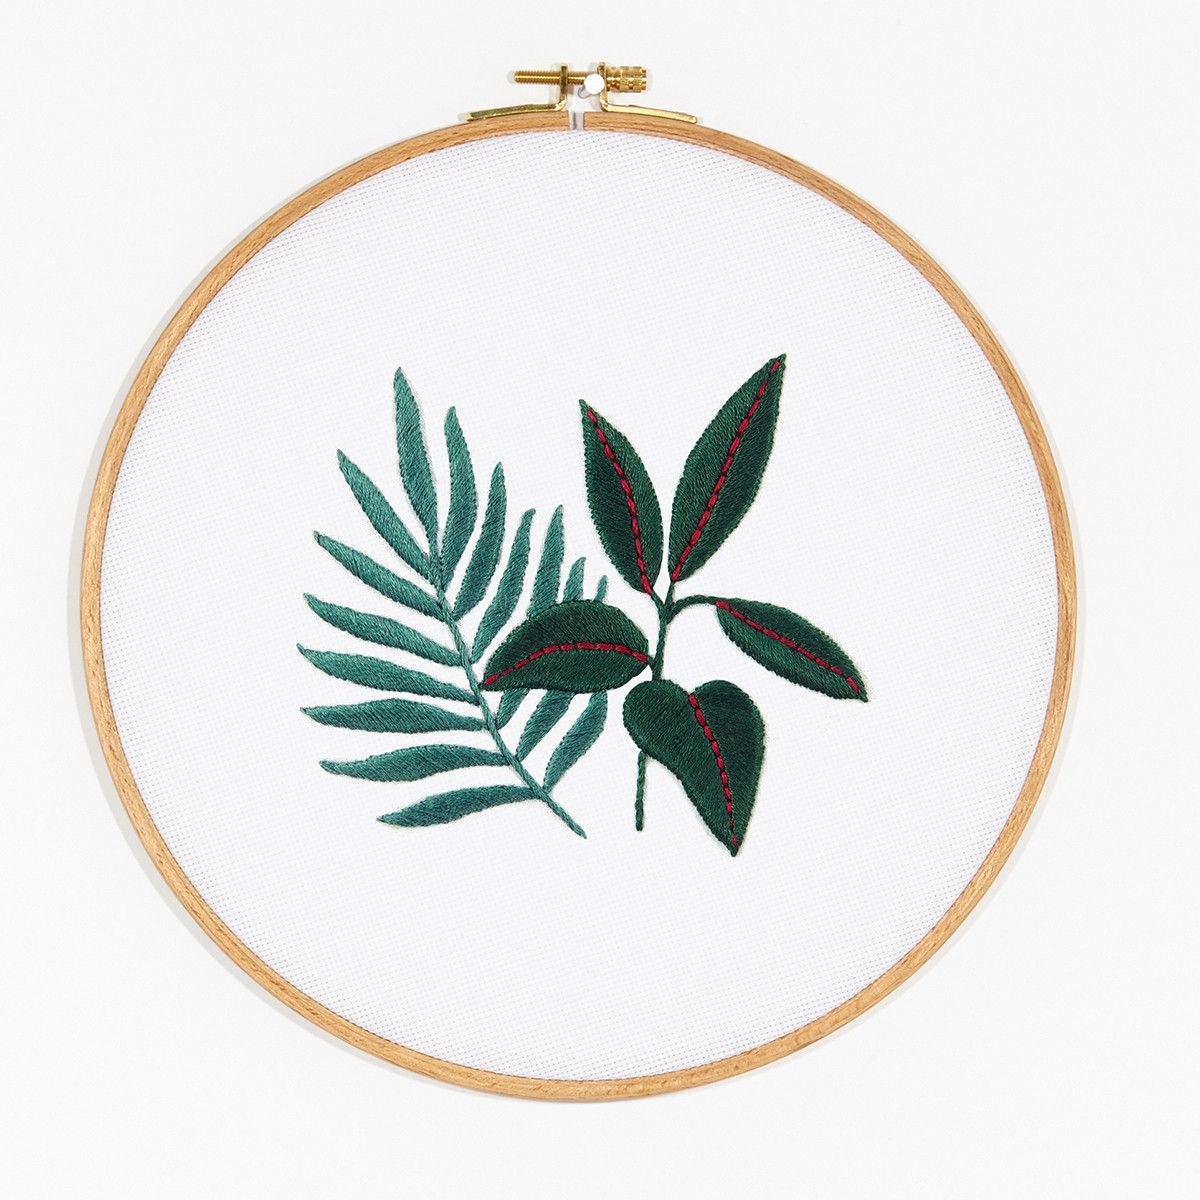 Rubber plant fern embroidery pattern one day ill sew this rubber plant fern embroidery pattern bankloansurffo Choice Image